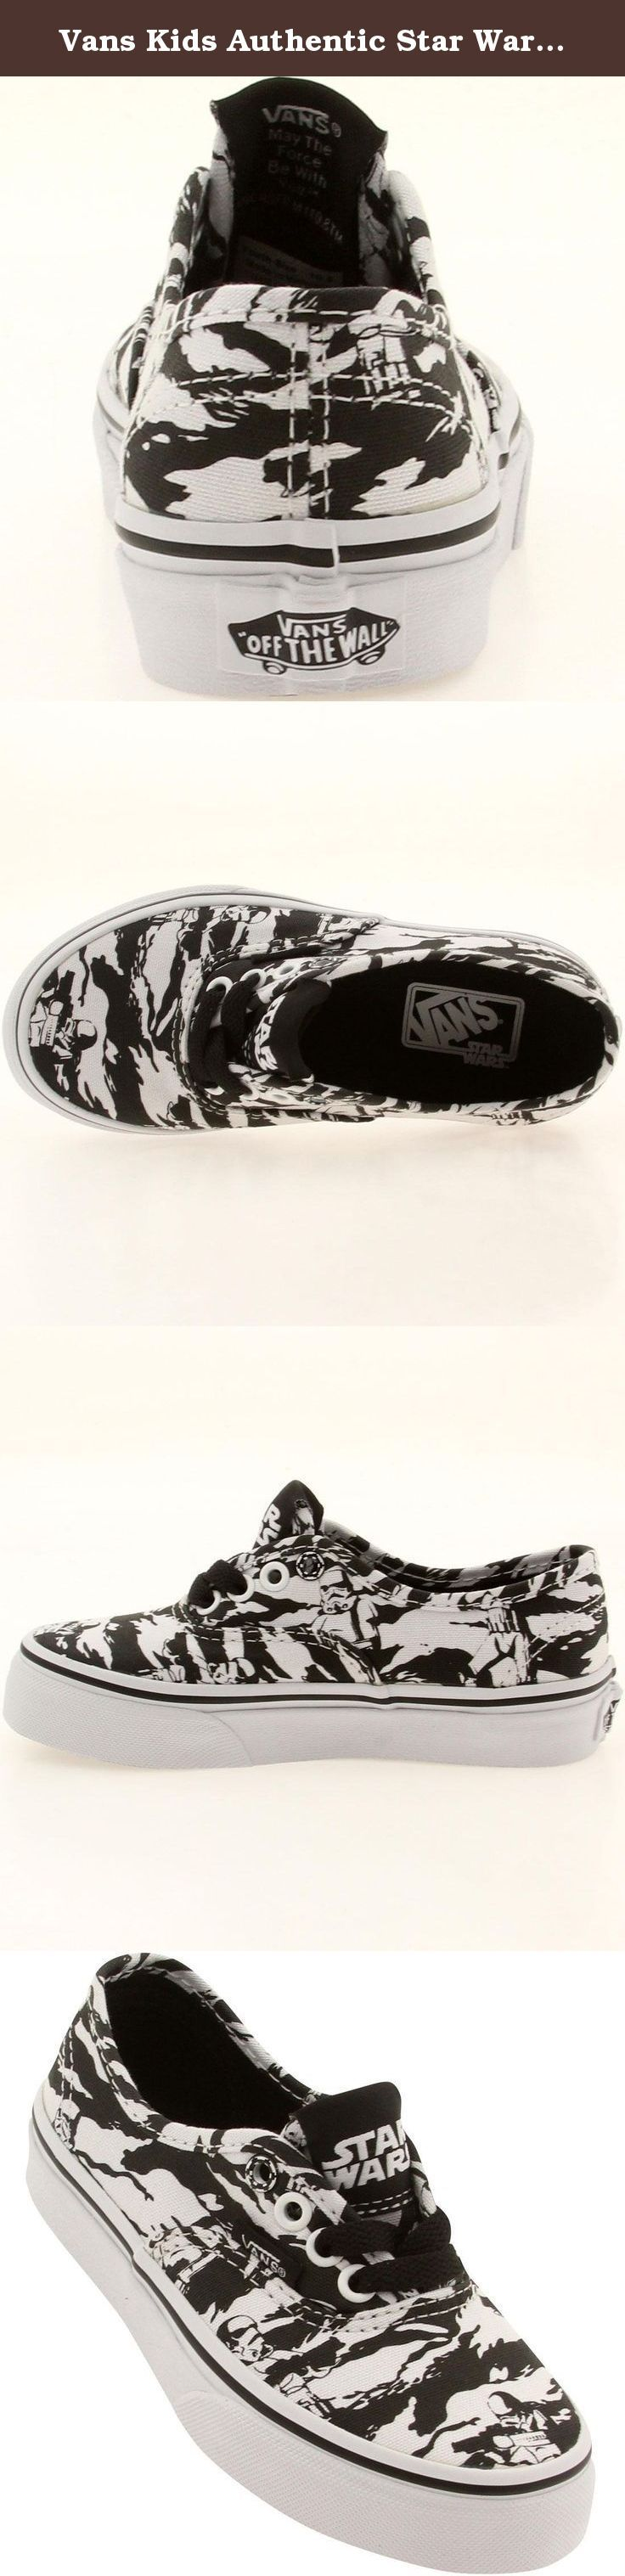 Vans Kids Authentic Star Wars Dark Side Storm Trooper Camo Sneakers Shoes. Vans Kids Authentic Star Wars Dark Side Storm Trooper Camo Sneakers Shoes.